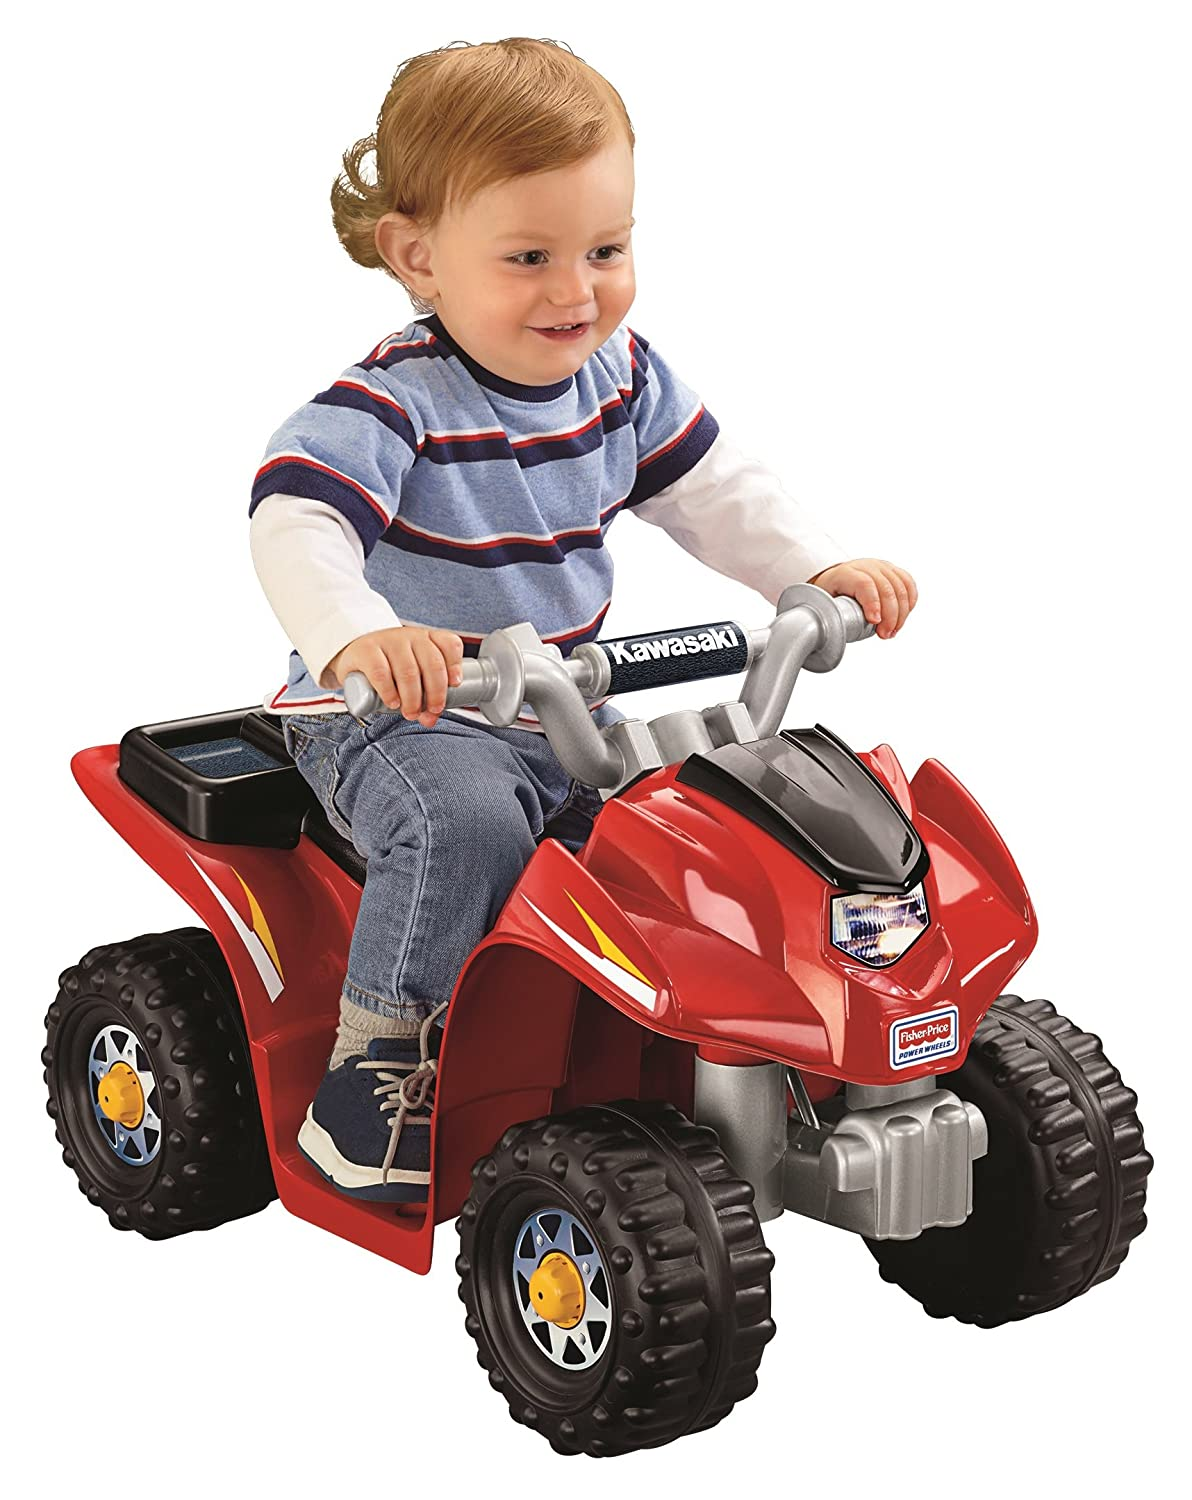 Amazon com: Power Wheels Kawasaki Lil' Quad: Toys & Games